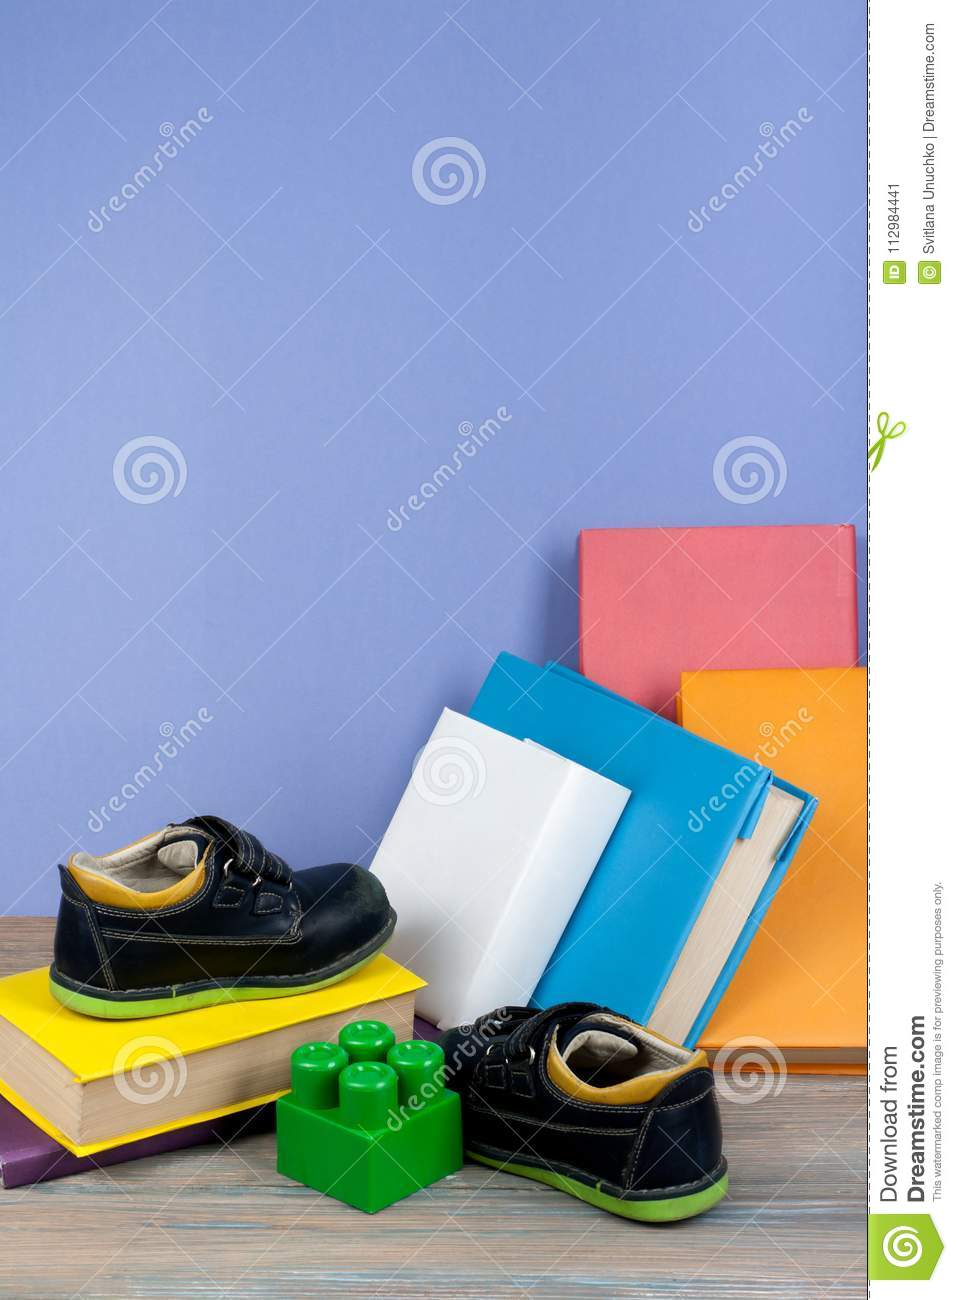 Hardback colorful books, toy, shoes on wooden table. Back to school. Copy space for text. Education business concept.